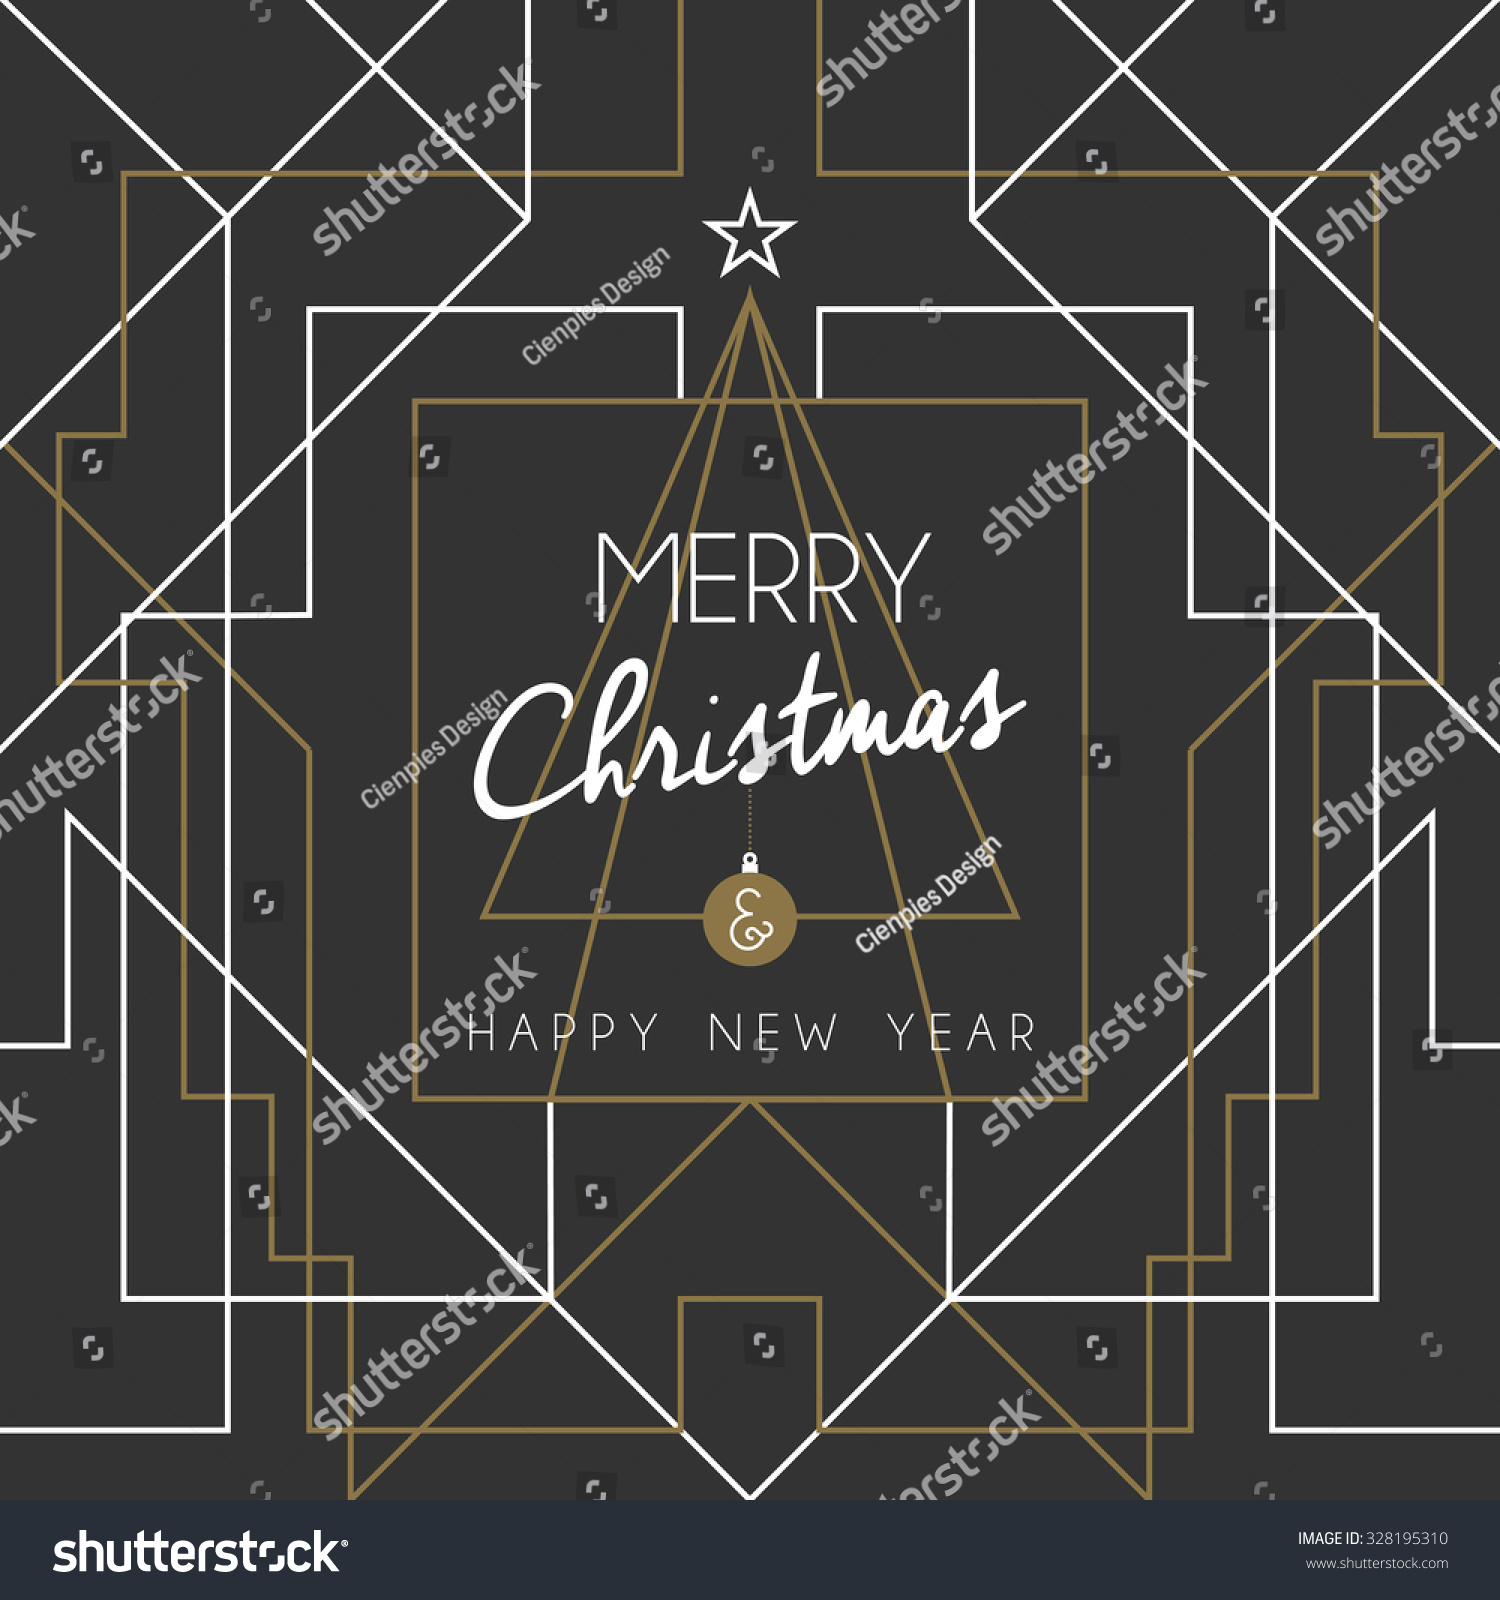 merry christmas and happy new year holiday greeting card geometry lines art deco style